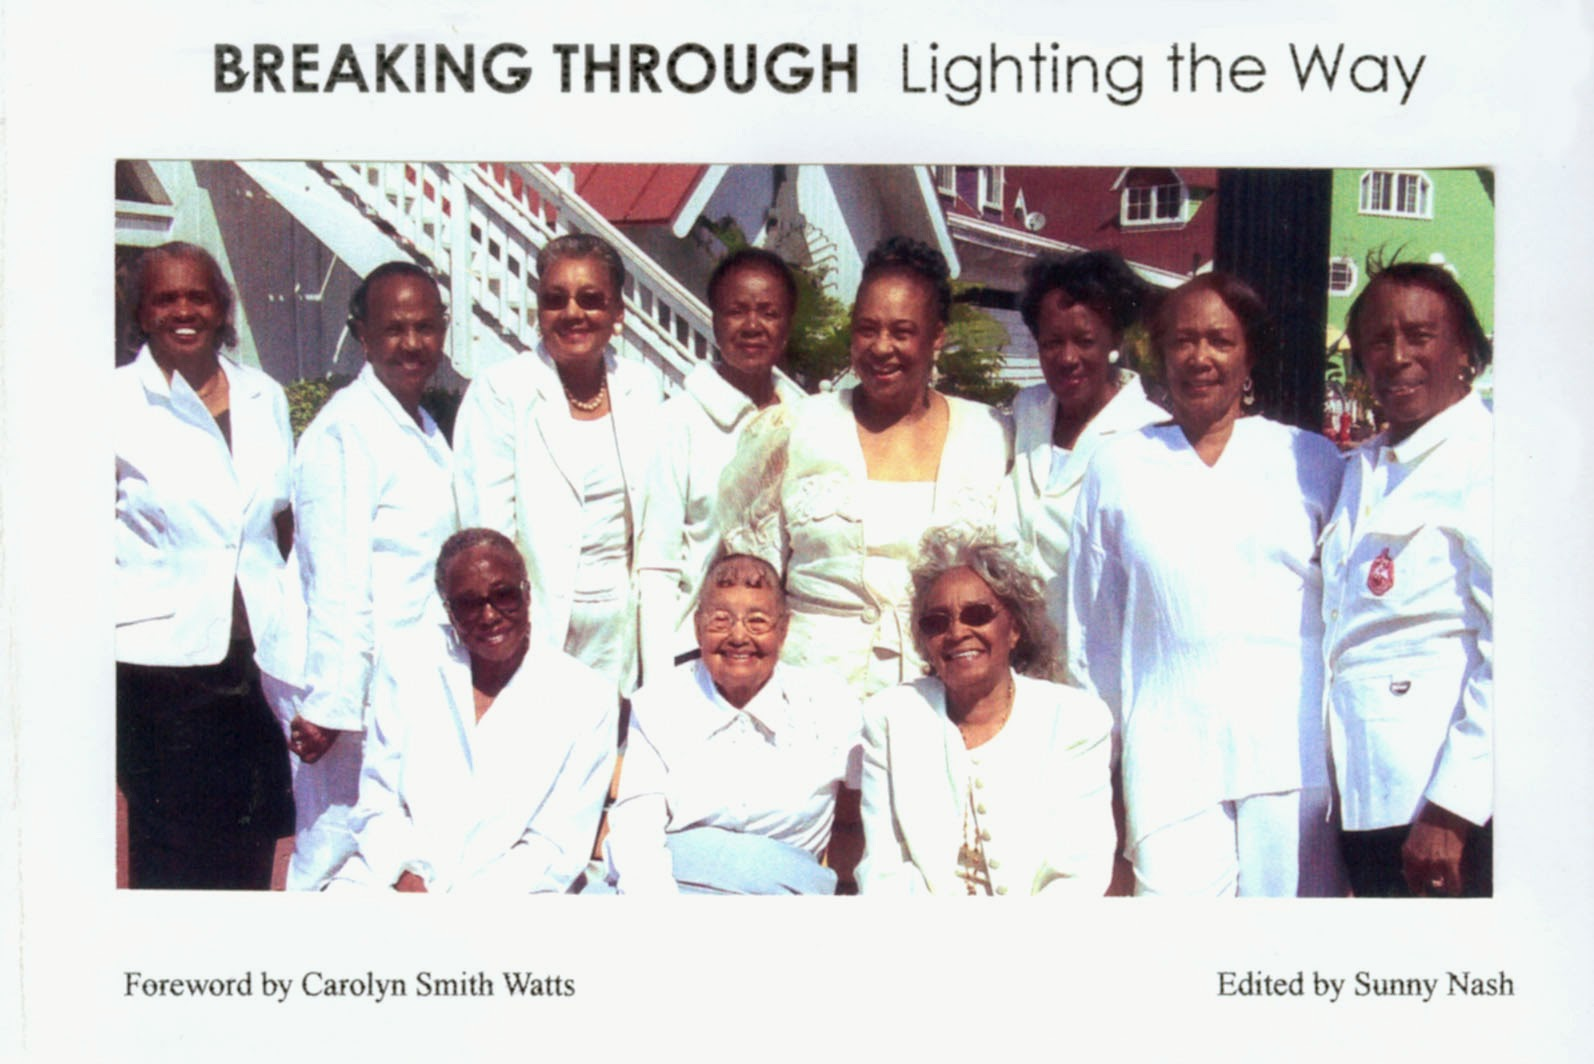 BREAKING THROUGH Lighting the Way  Profiles of African American Women who made a difference to the history of Long Beach, California  Edited by Sunny Nash Foreword by Carolyn Smith Watts  (l-r, rear) Evelyn Knight, Patricia Lofland Bobbie Smith, Alta Cooke, Carrie Bryant Vera Mulkey, Wilma Powell, Doris Topsy-Elvord (seated l-r) Autrilla Scott, Maycie Herrington Dale Clinton & Lillie Mae Wesley (not present)